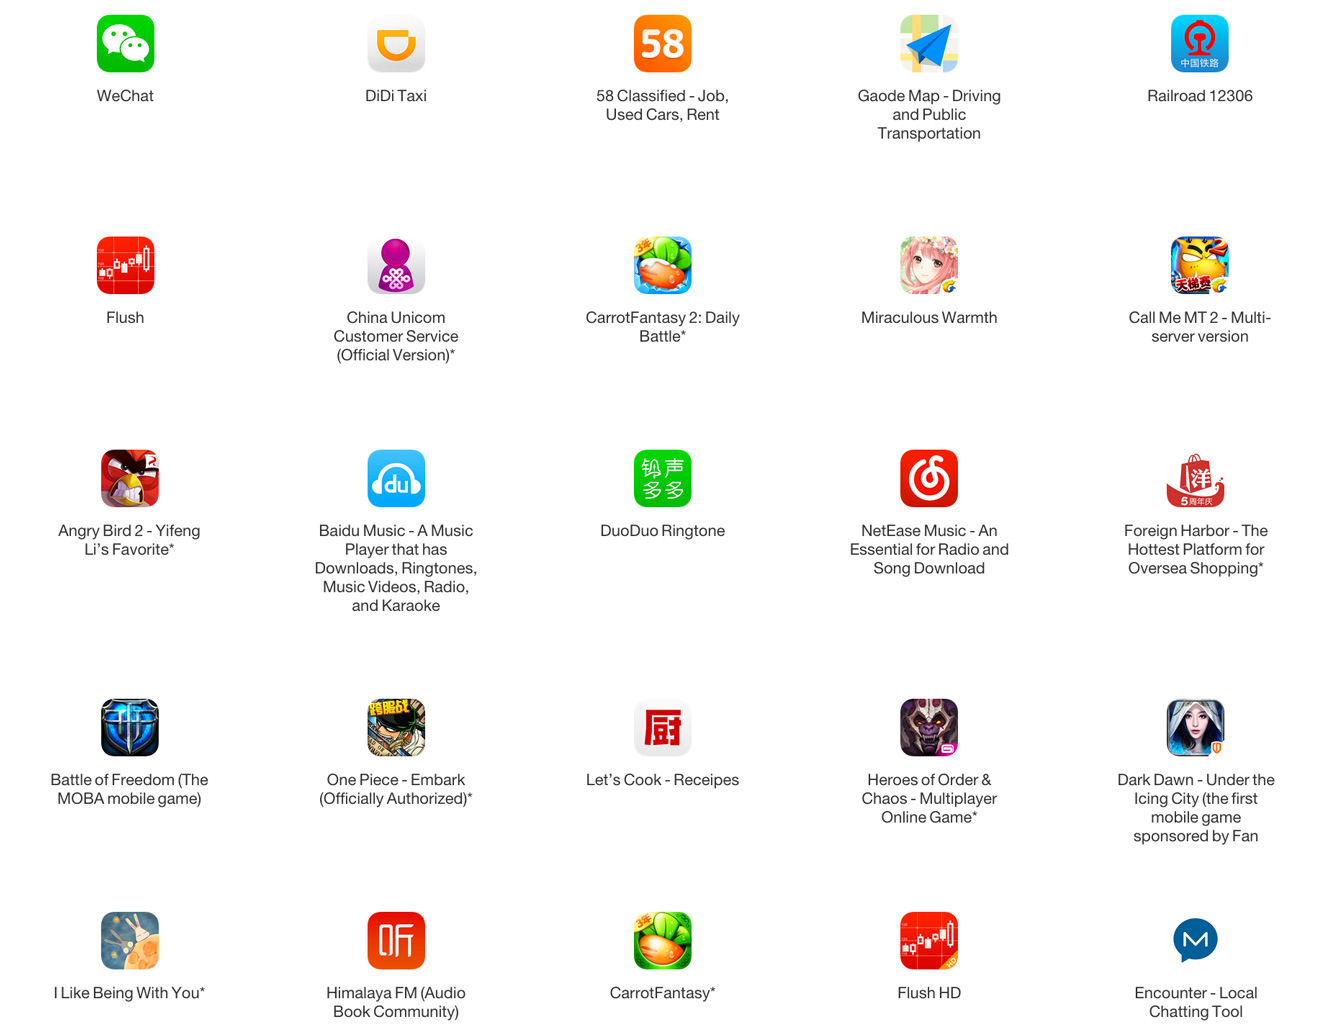 Apple posts XcodeGhost Q&A, lists affected apps 1